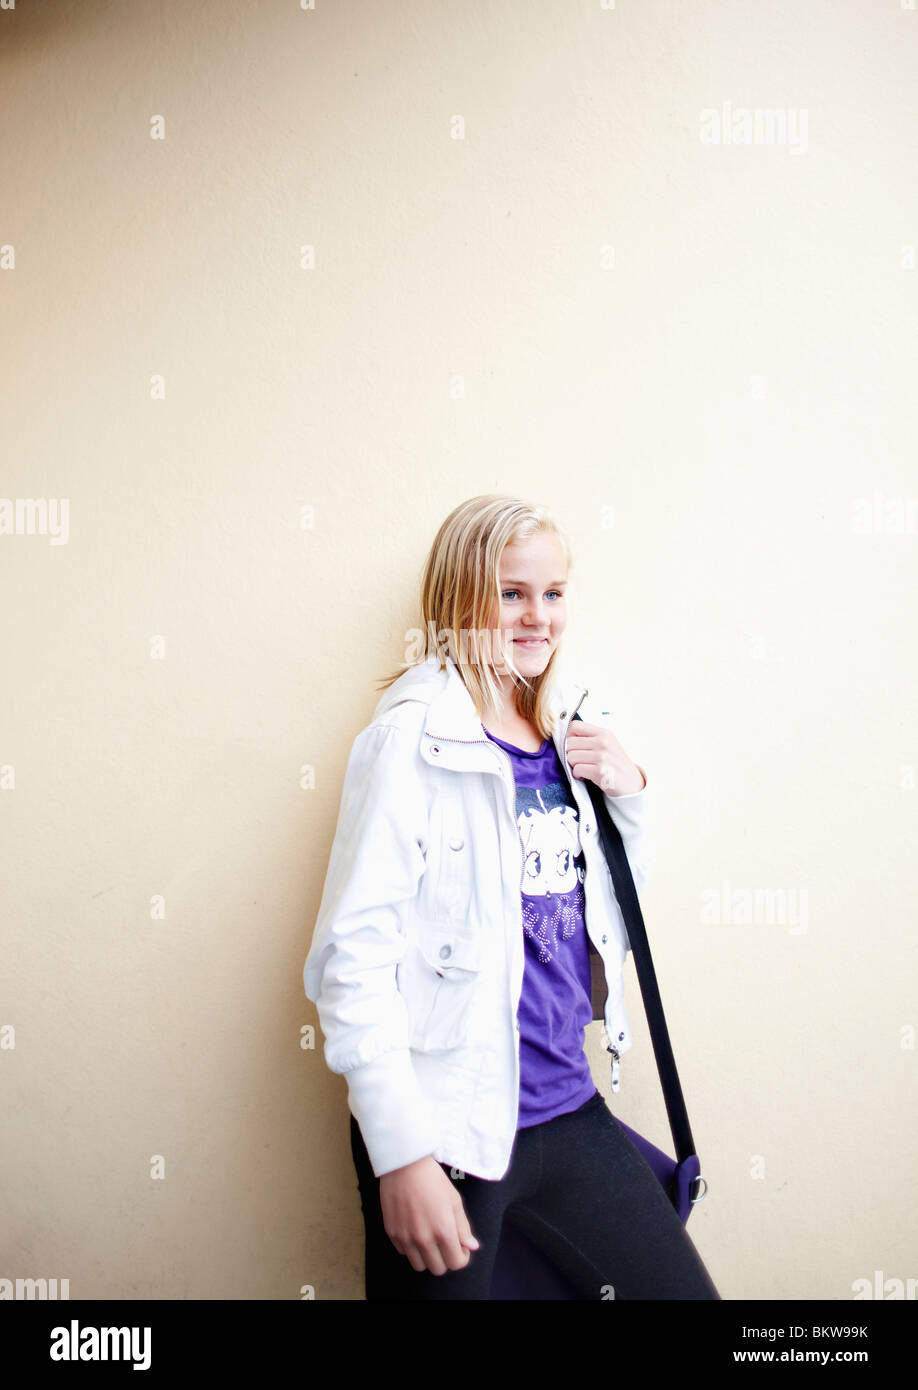 Girl standing against wall - Stock Image